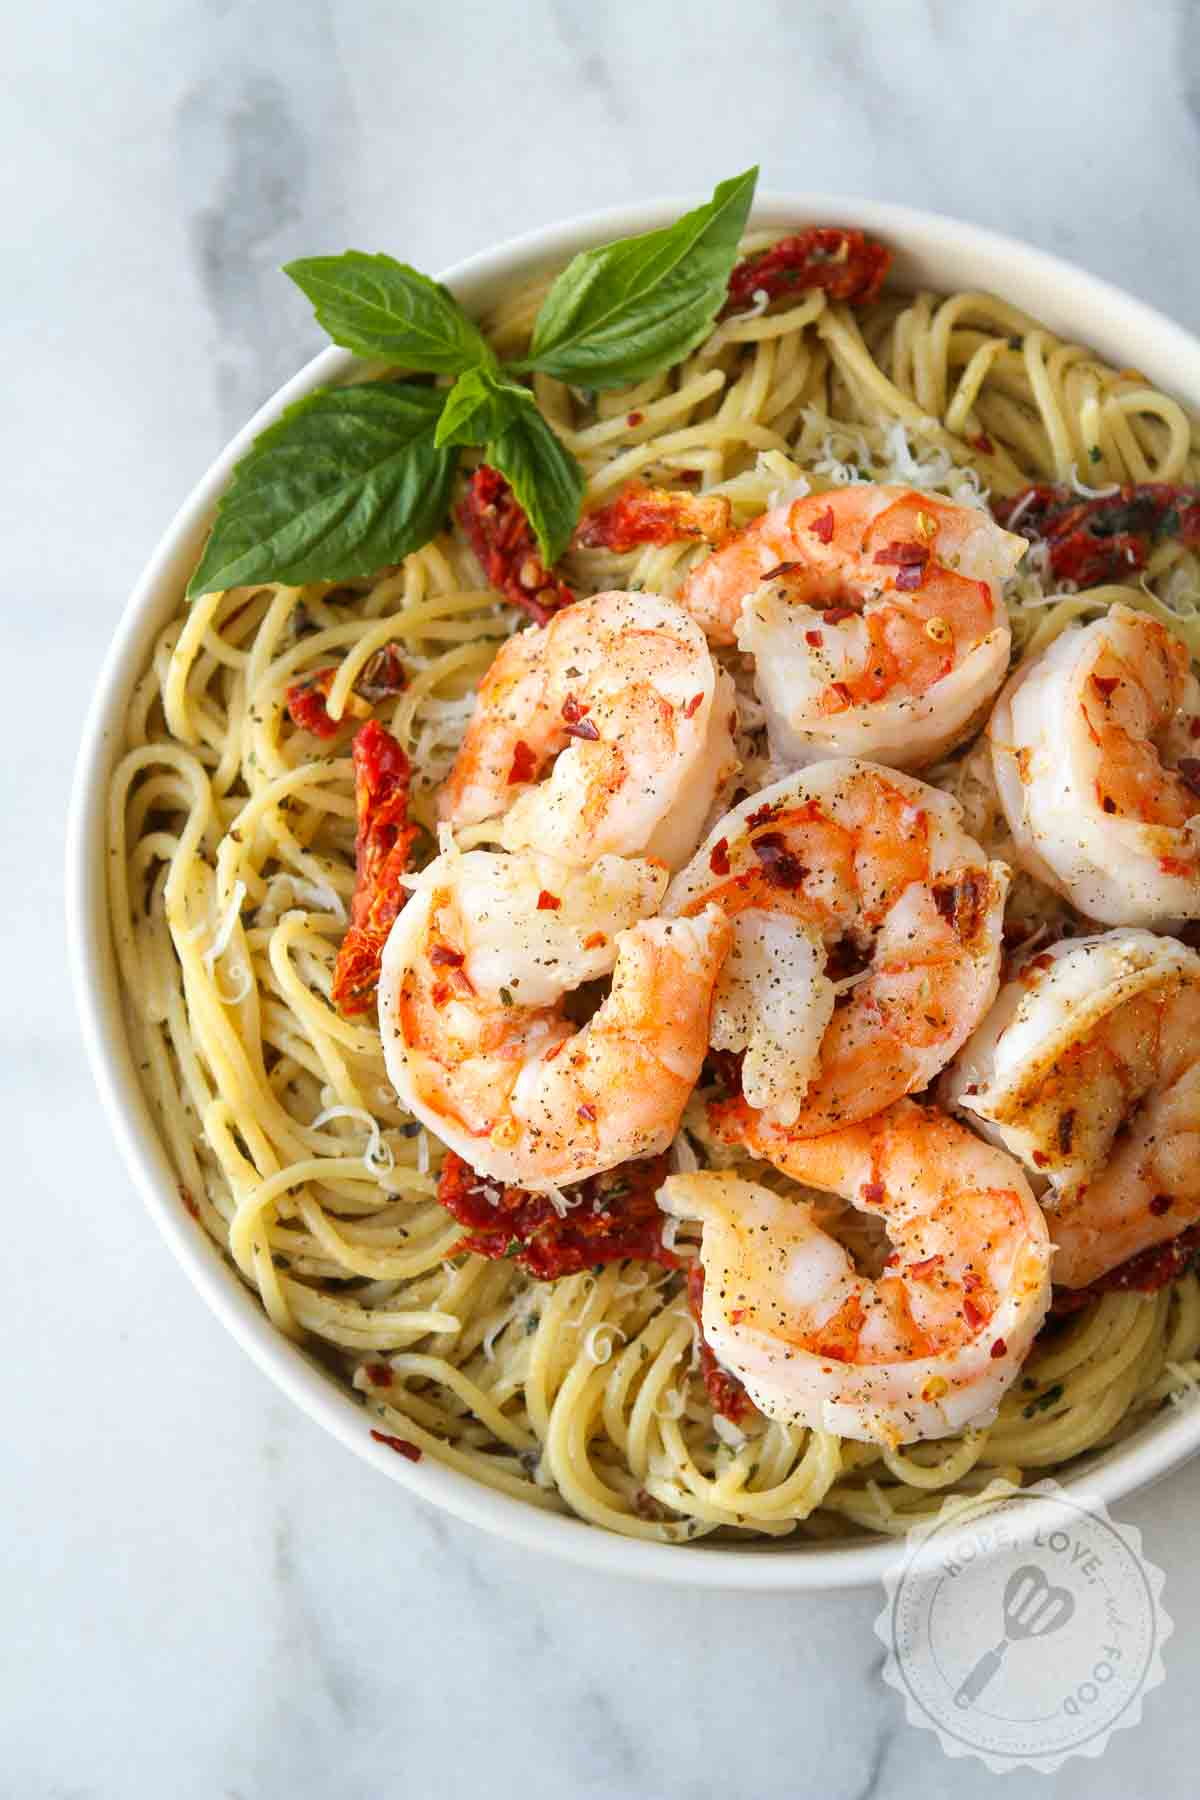 Shrimp on roasted garlic pasta.